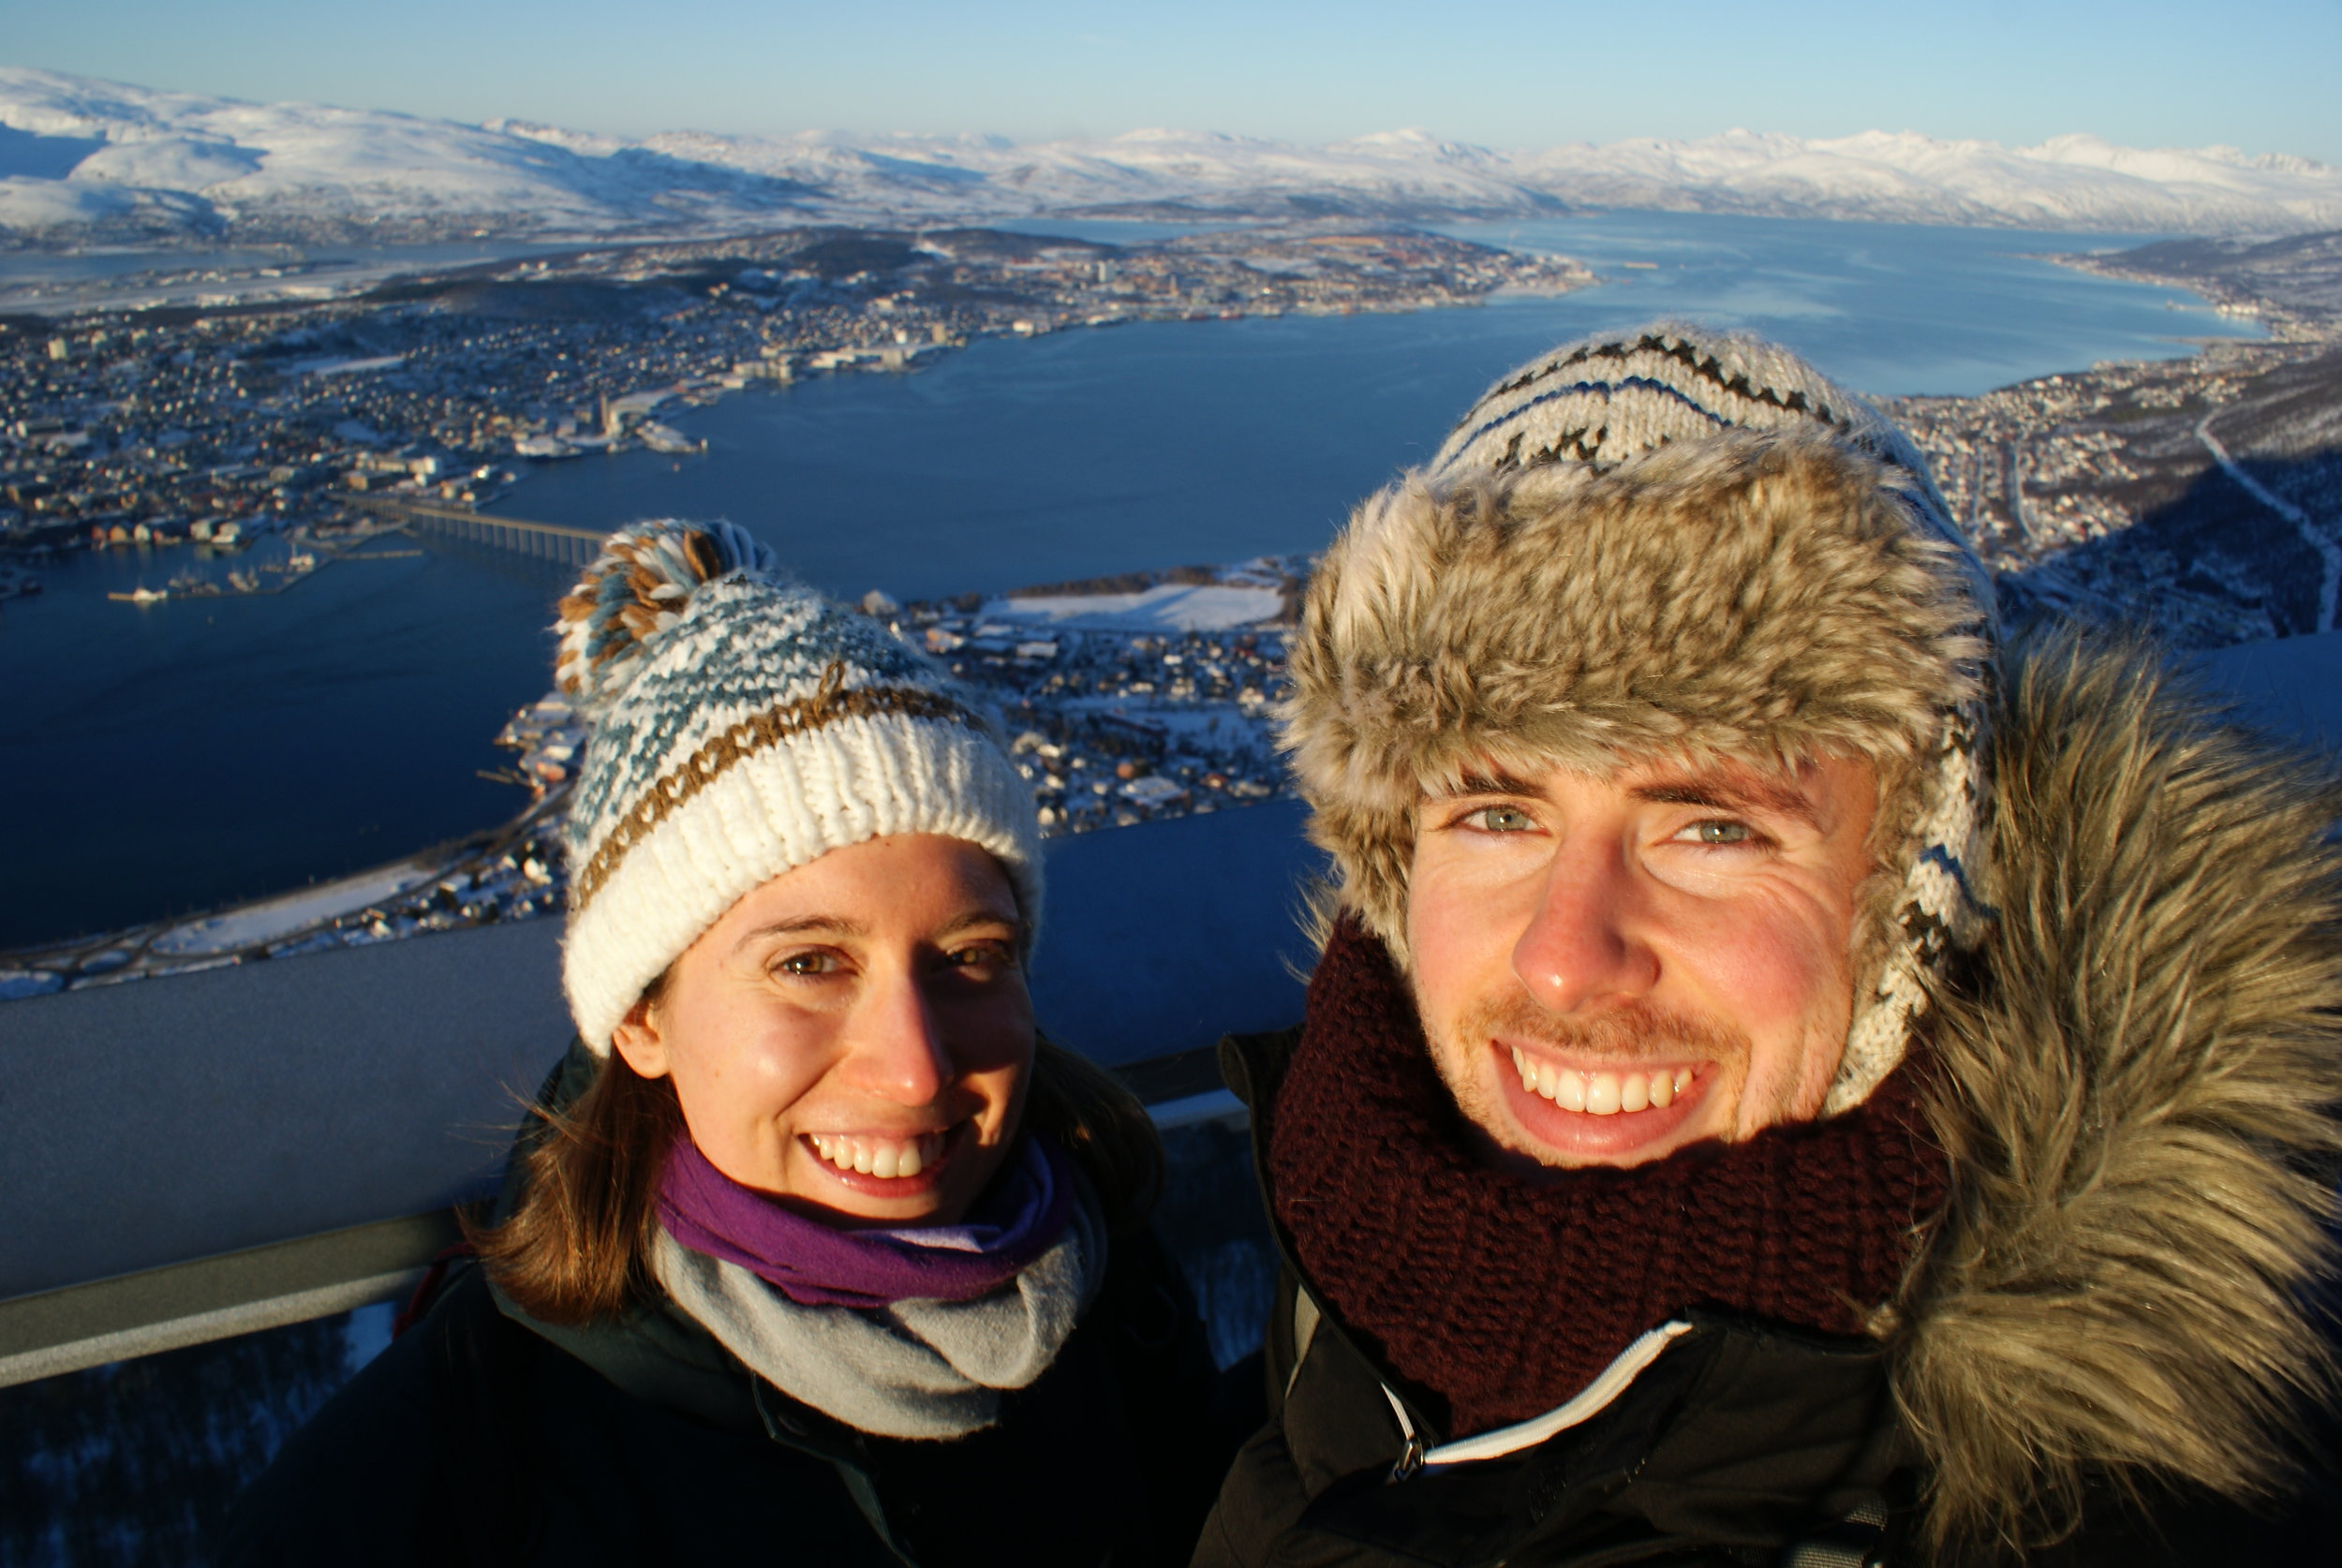 Co-founders Taylor and Ander in Tromsø, Norway.